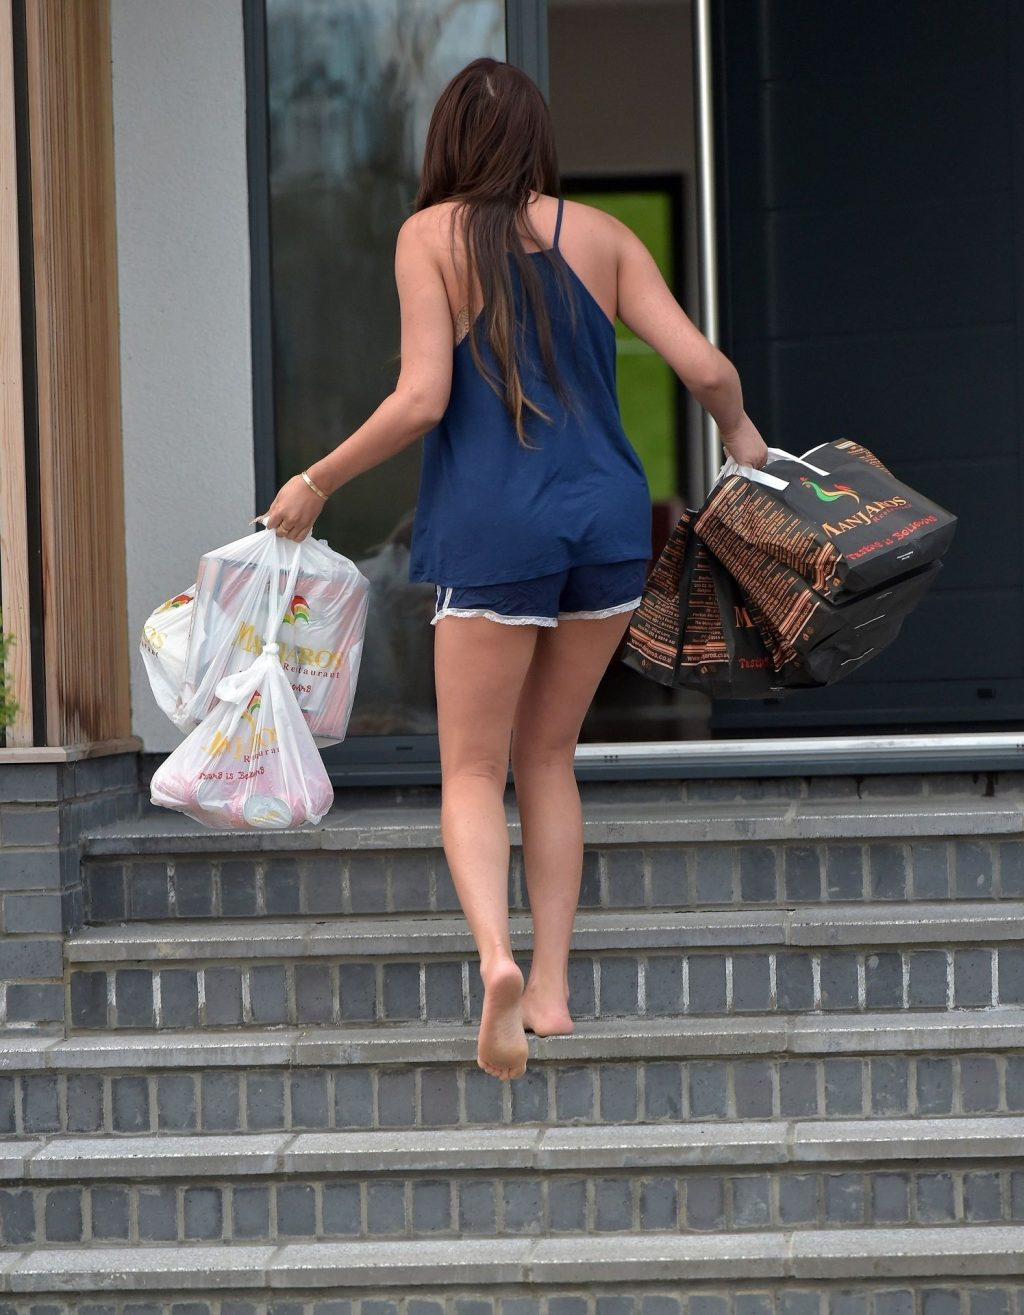 Charlotte Crosby Takes in Large Food Order Wearing PJ's (22 Photos)